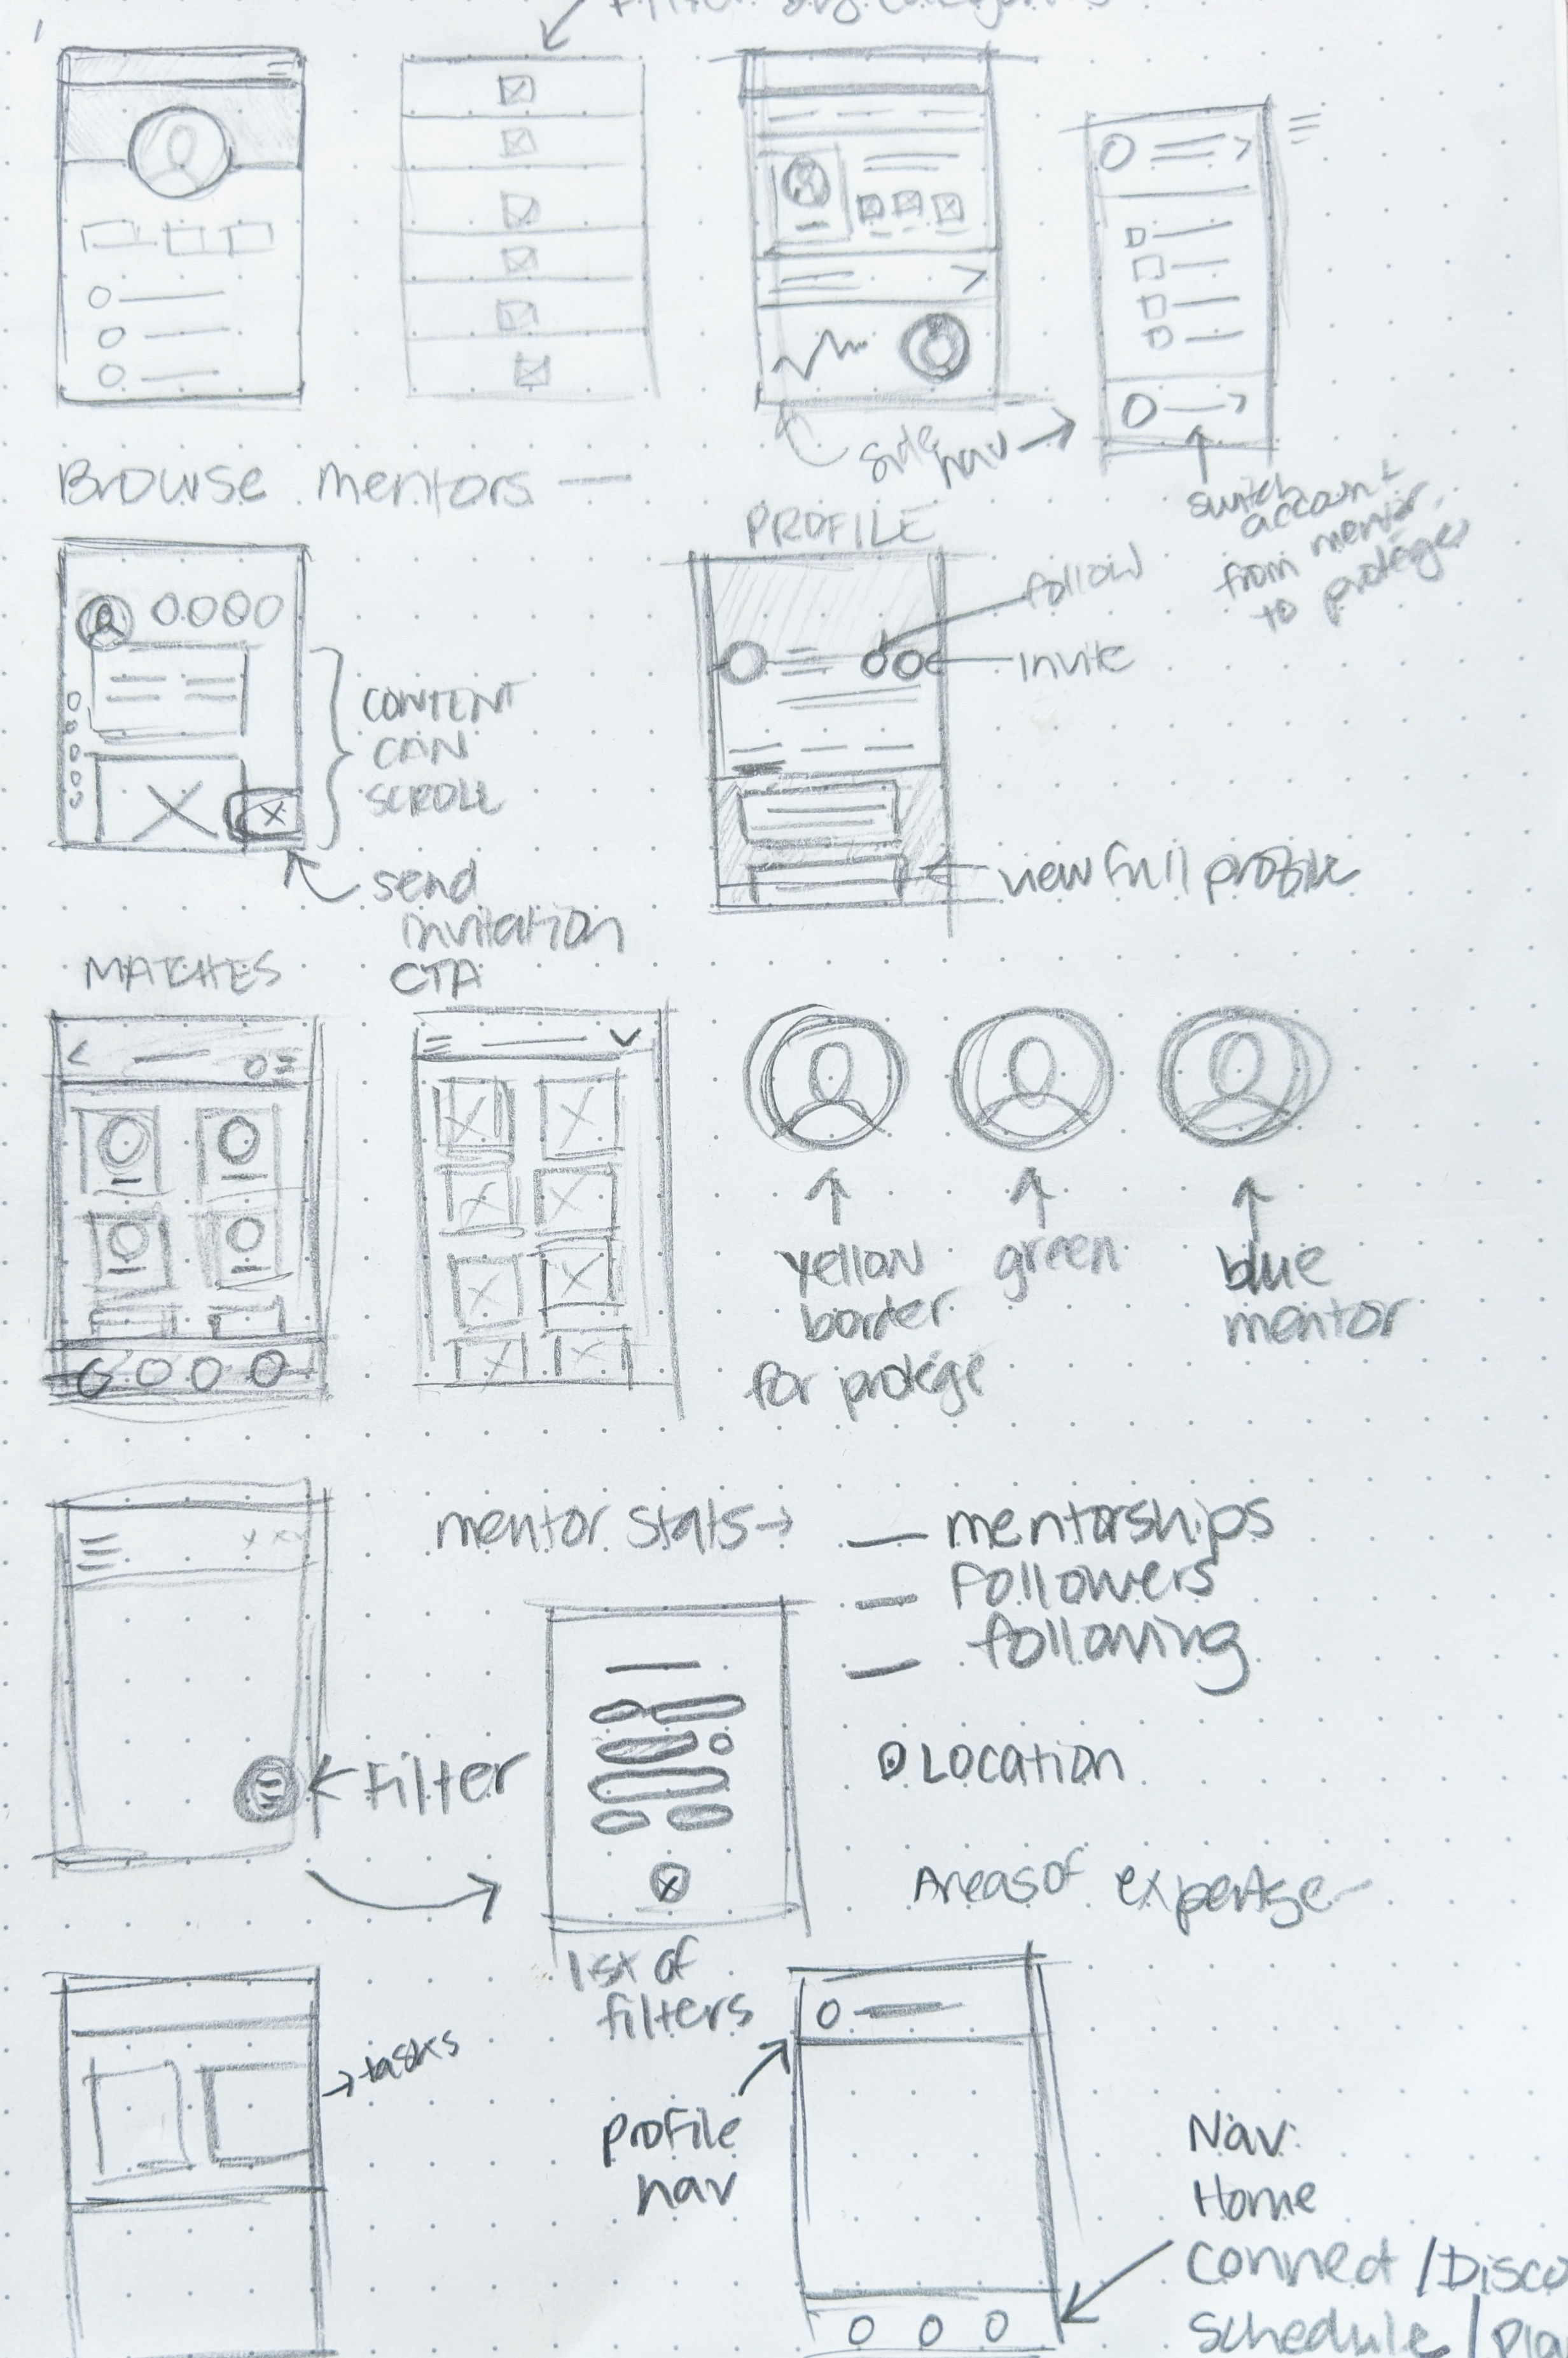 Sketching wireframes, with specific focus on icon treatment and navigational elements.